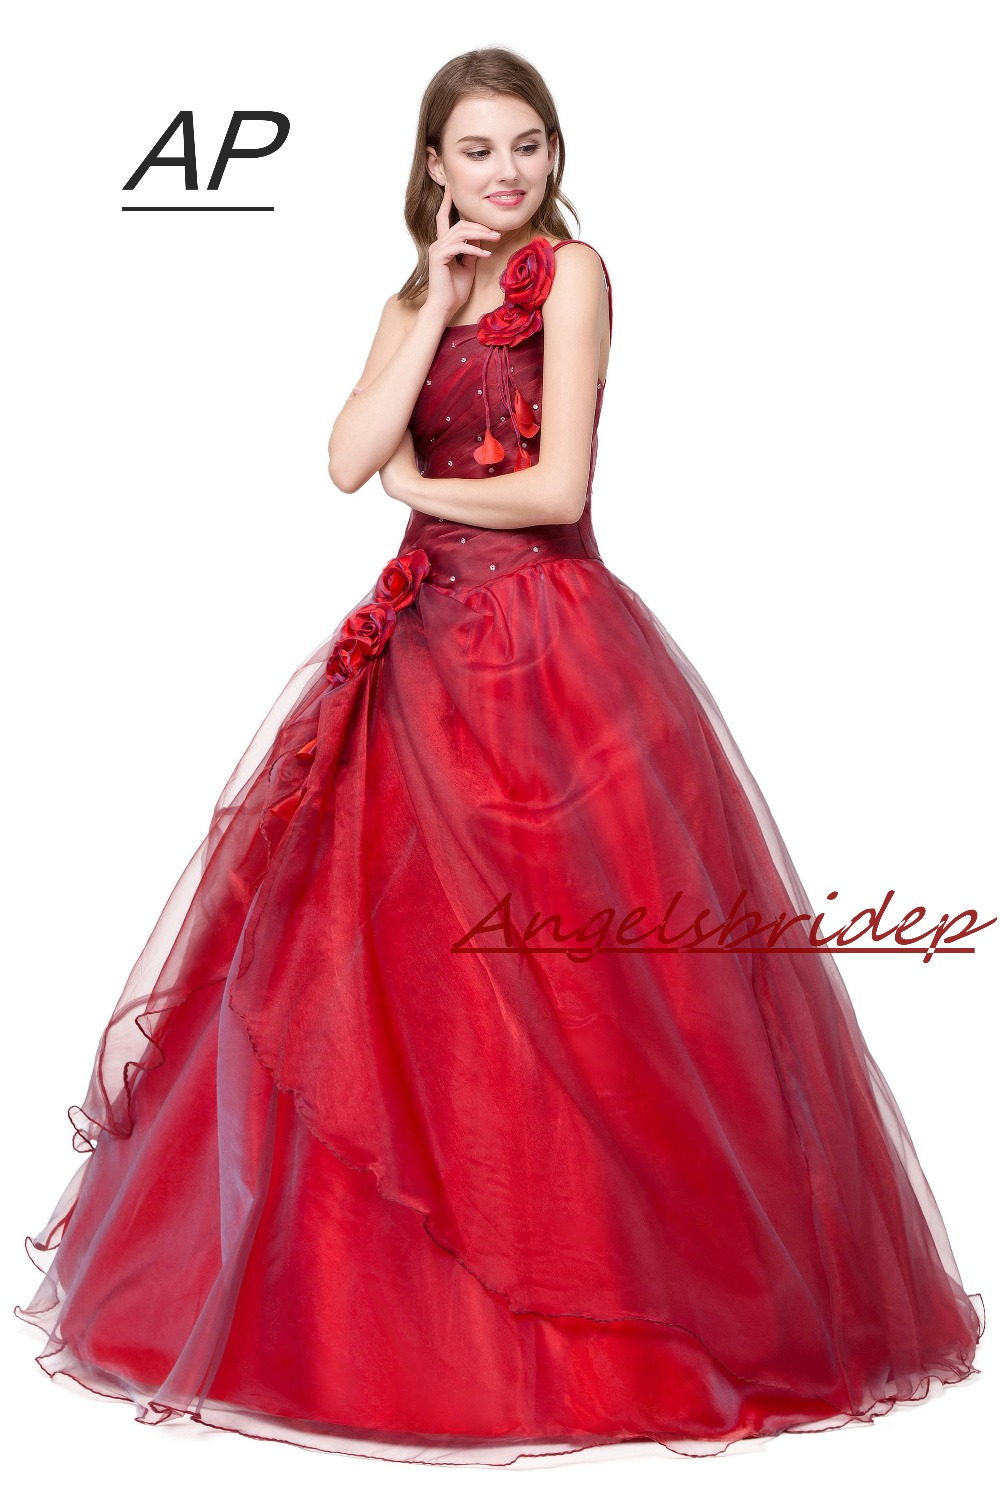 Image 4 - ANGELSBRIDEP Quinceanera Dress Red Vestidos De 15 Anos Sexy One  Shoulder Masquerade Ball Gowns Formal Party Gowns 2020 Hot Saleball  gown formalmasquerade ball gownsquinceanera dresses red